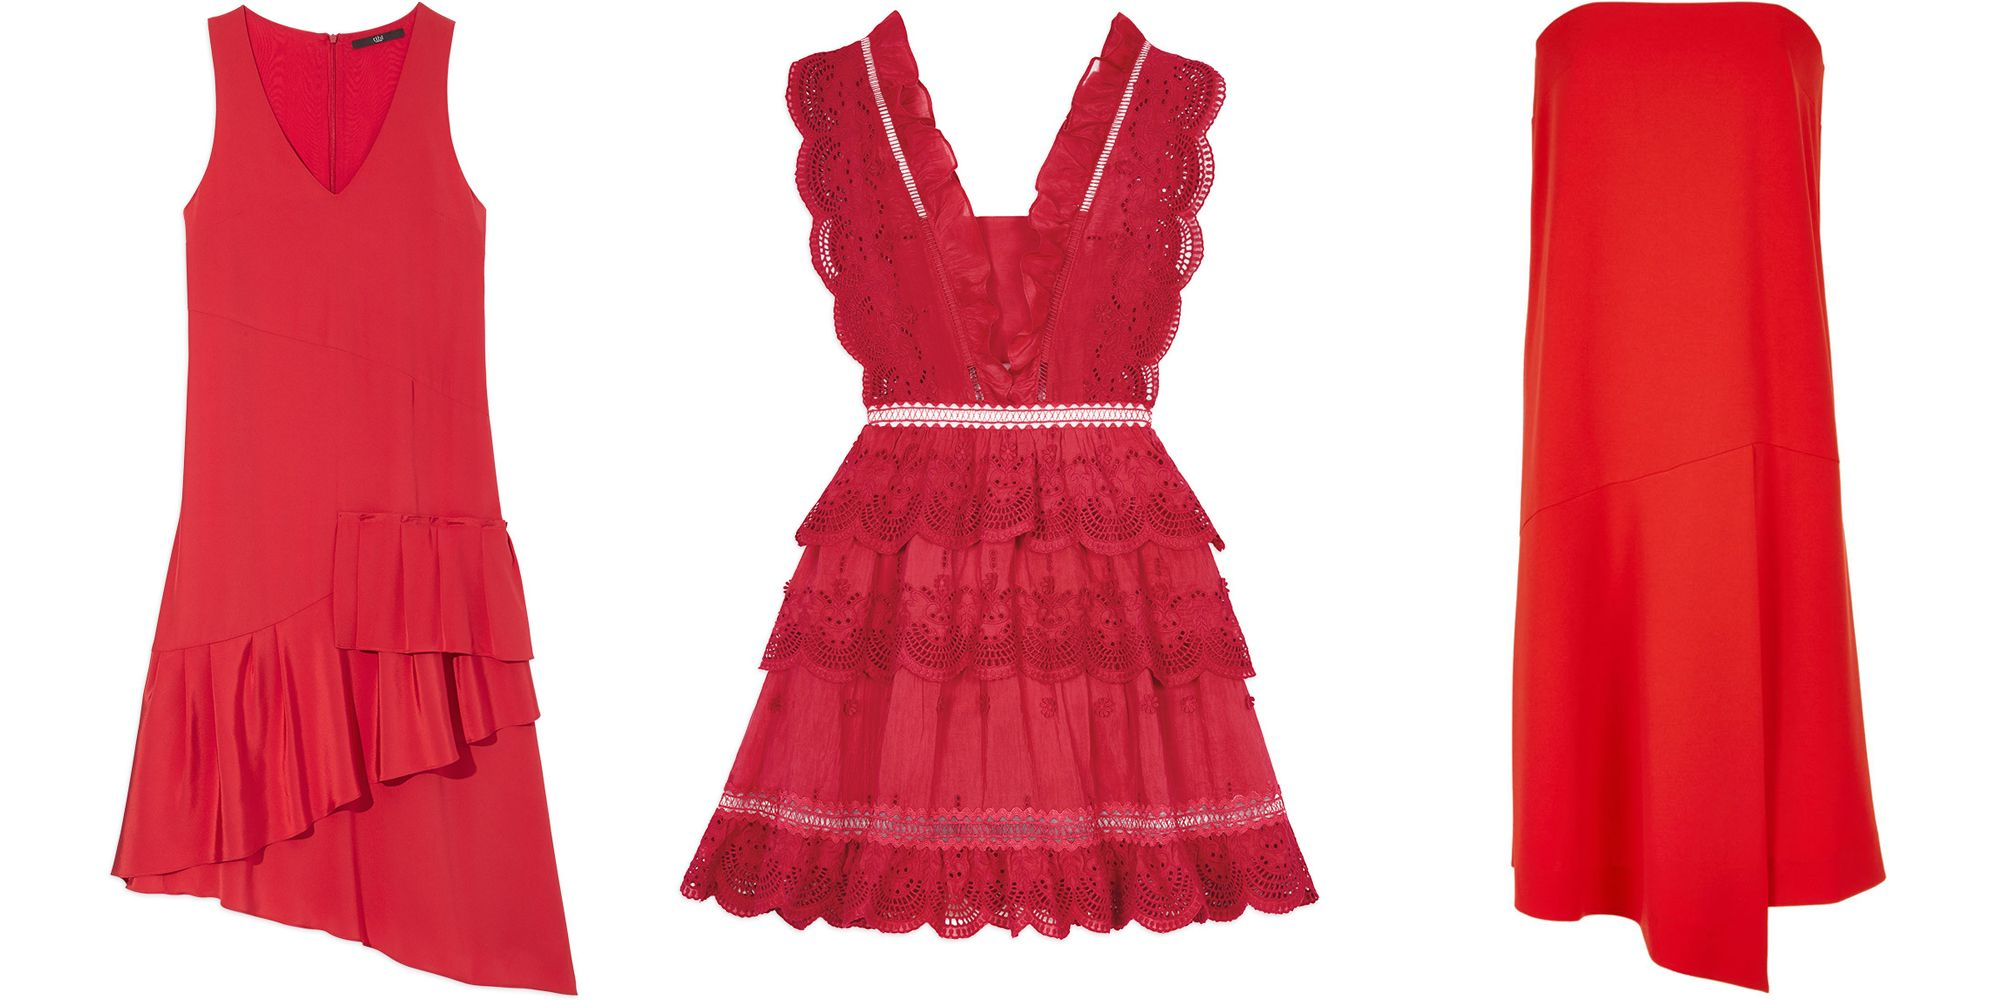 "<p>The little red dress seduces time, and time, again. </p><p><br></p><p><em><strong>Tibi</strong>  ruffle dress, $650, <strong><a href=""https://shop.harpersbazaar.com/designers/t/tibi/silk-v-neck-ruffle-dress-9253.html"" target=""_blank"">shopBAZAAR.com</a></strong>; <strong>Self-Portrait</strong> tiered peplum dress, $540, <strong><a href=""https://shop.harpersbazaar.com/designers/s/self-portrait/three-tiered-peplum-lace-dress-9261.html"" target=""_blank"">shopBAZAAR.com</a></strong>; <strong>Tibi</strong> structured strapless dress, $425, <strong><a href=""https://shop.harpersbazaar.com/designers/t/tibi/structured-crepe-strapless-drape-dress-7953.html"" target=""_blank"">shopBAZAAR.com</a></strong>. </em></p><p><br></p>"